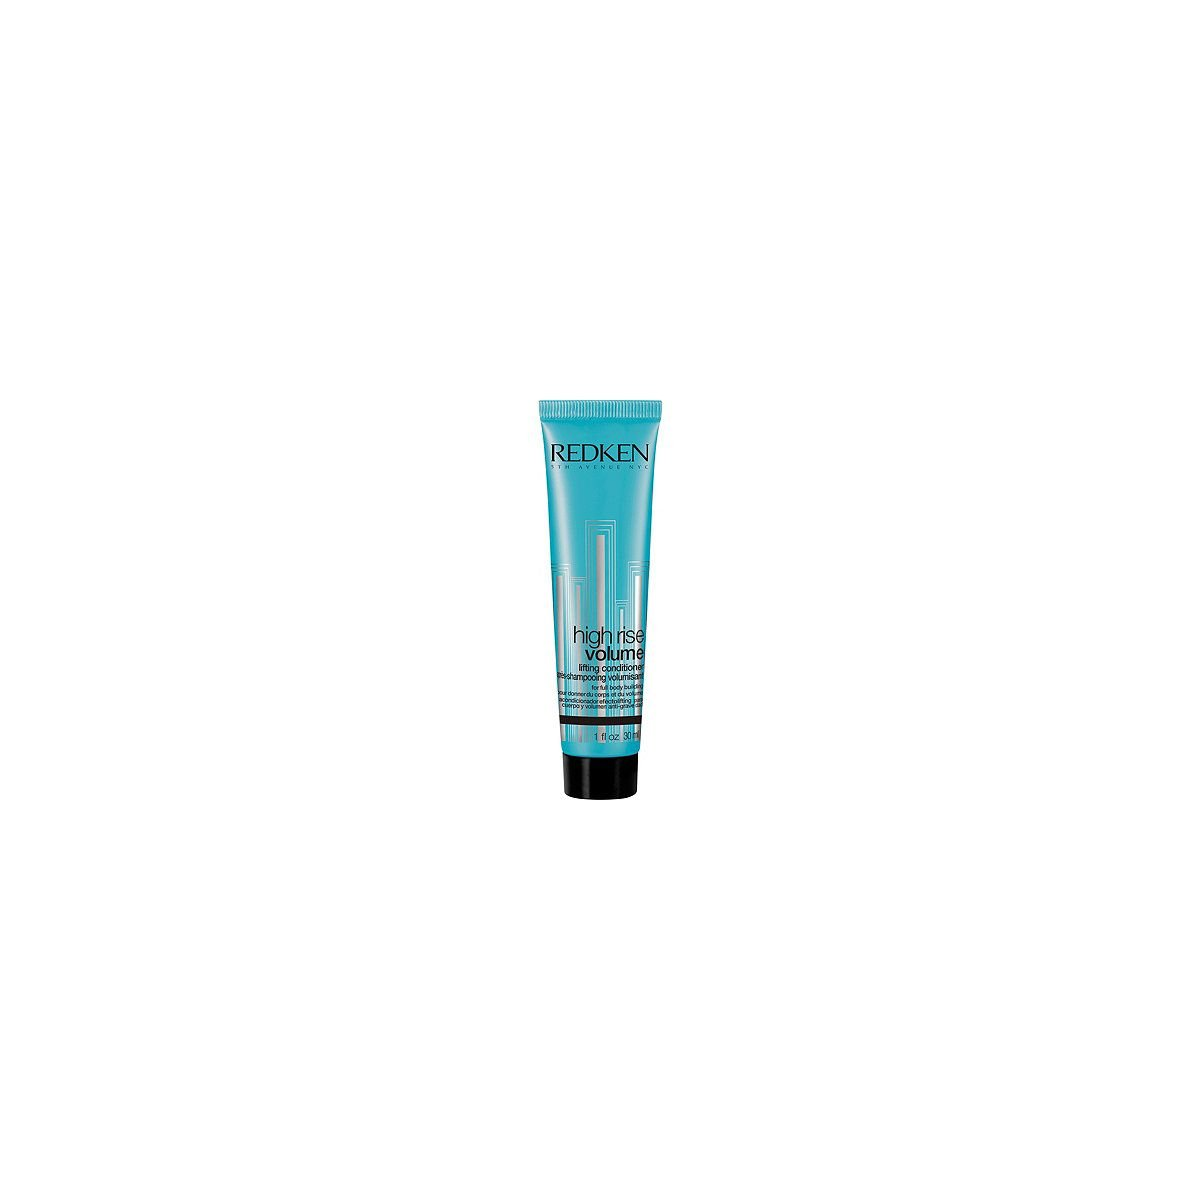 Redken High Rise Volume Lifting Conditioner, 1 Ounce Tube